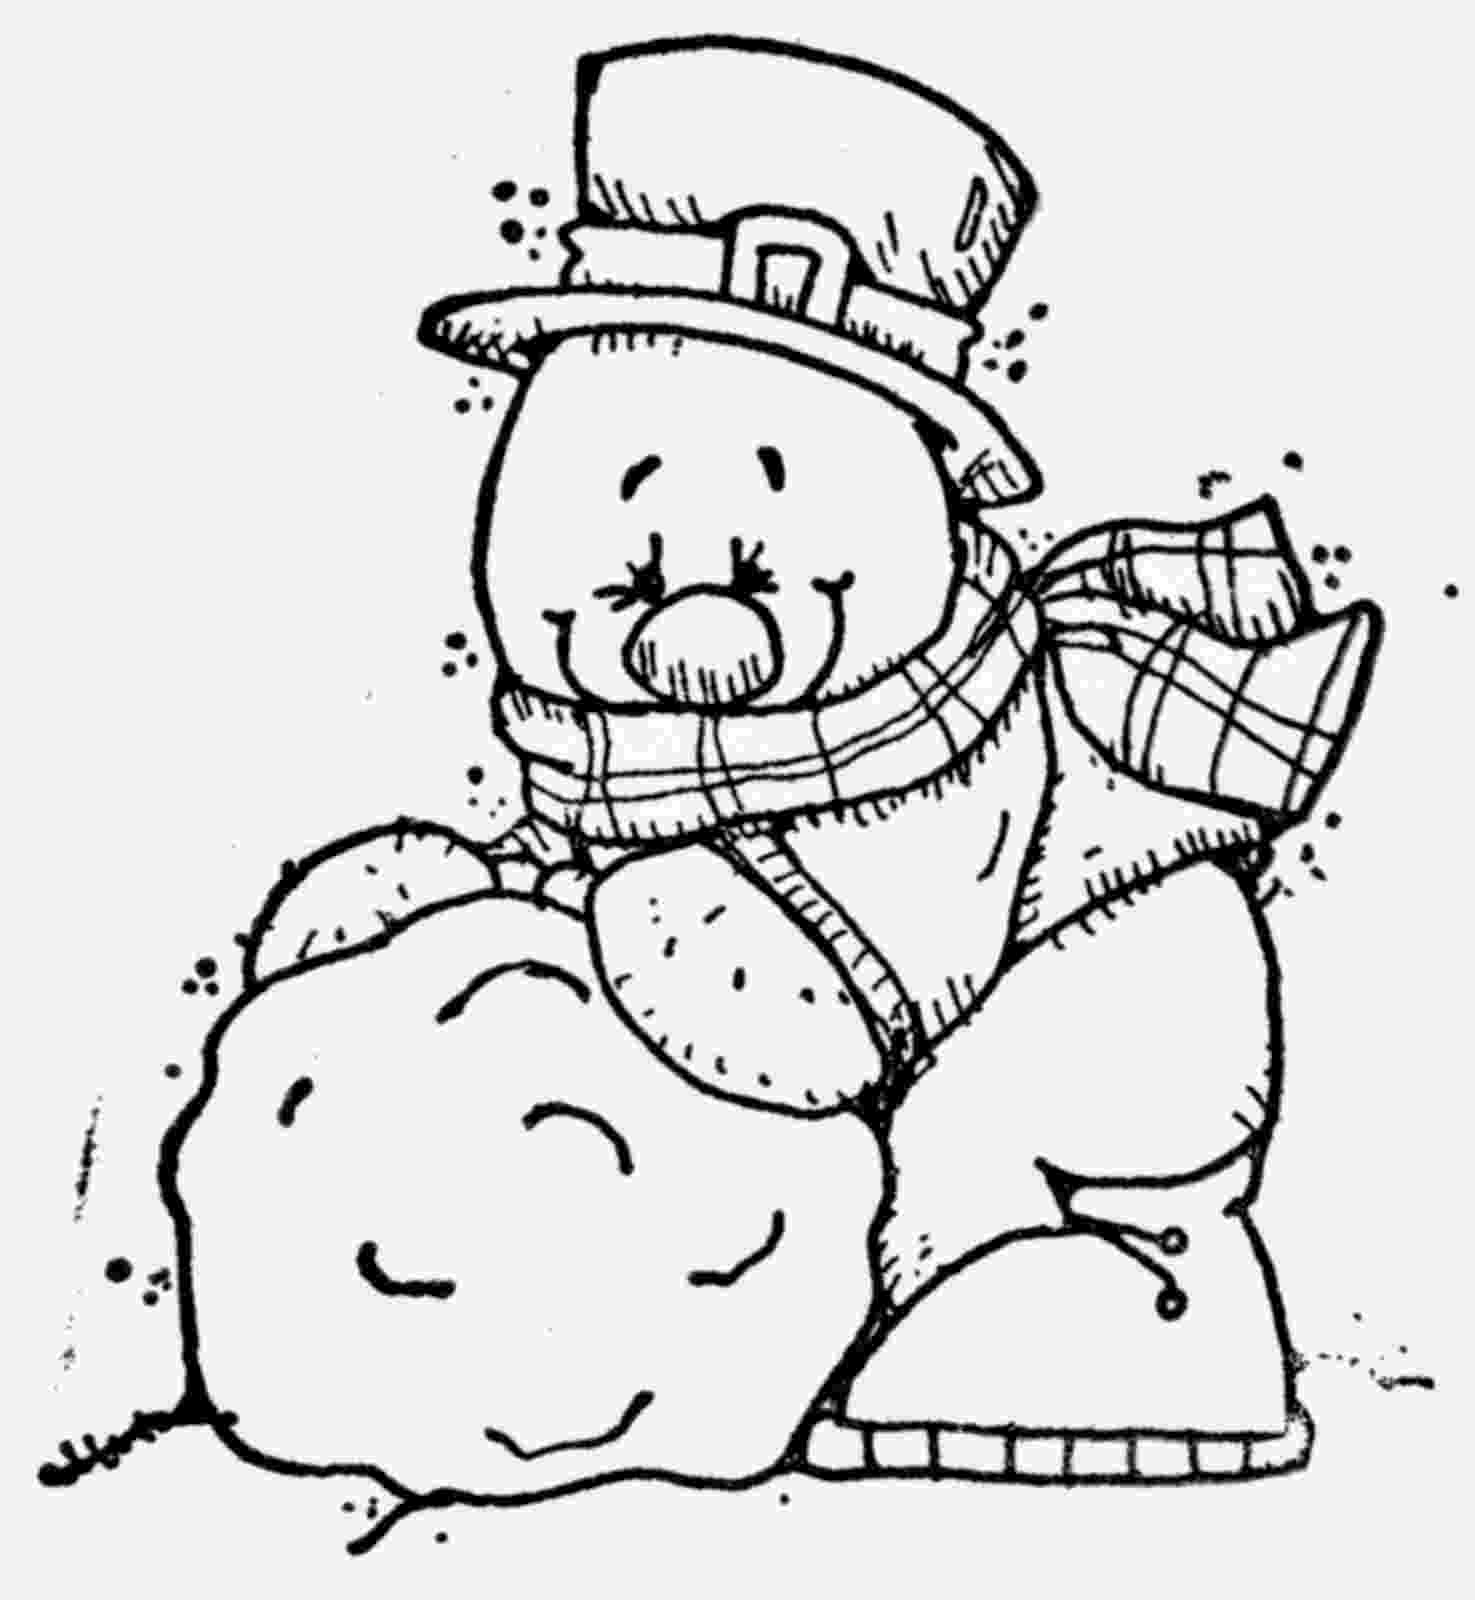 printable coloring pages snowman cute snowmen free printable coloring pages oh my fiesta snowman printable pages coloring